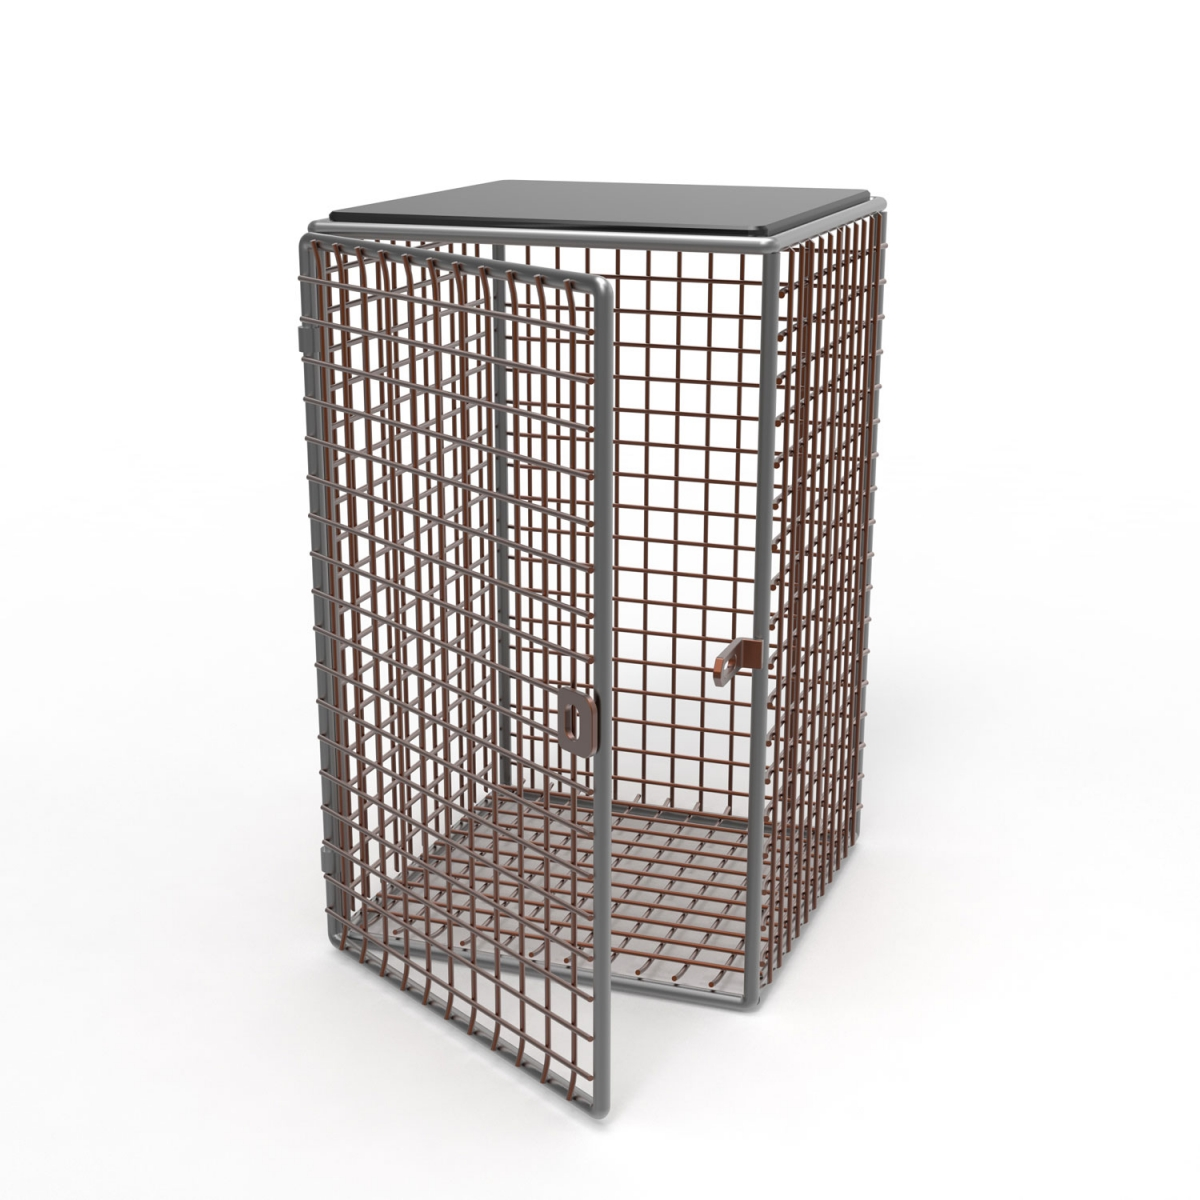 Wire Mesh Furniture Collection BY Bowles & Bowles - FLODEAU.COM 02